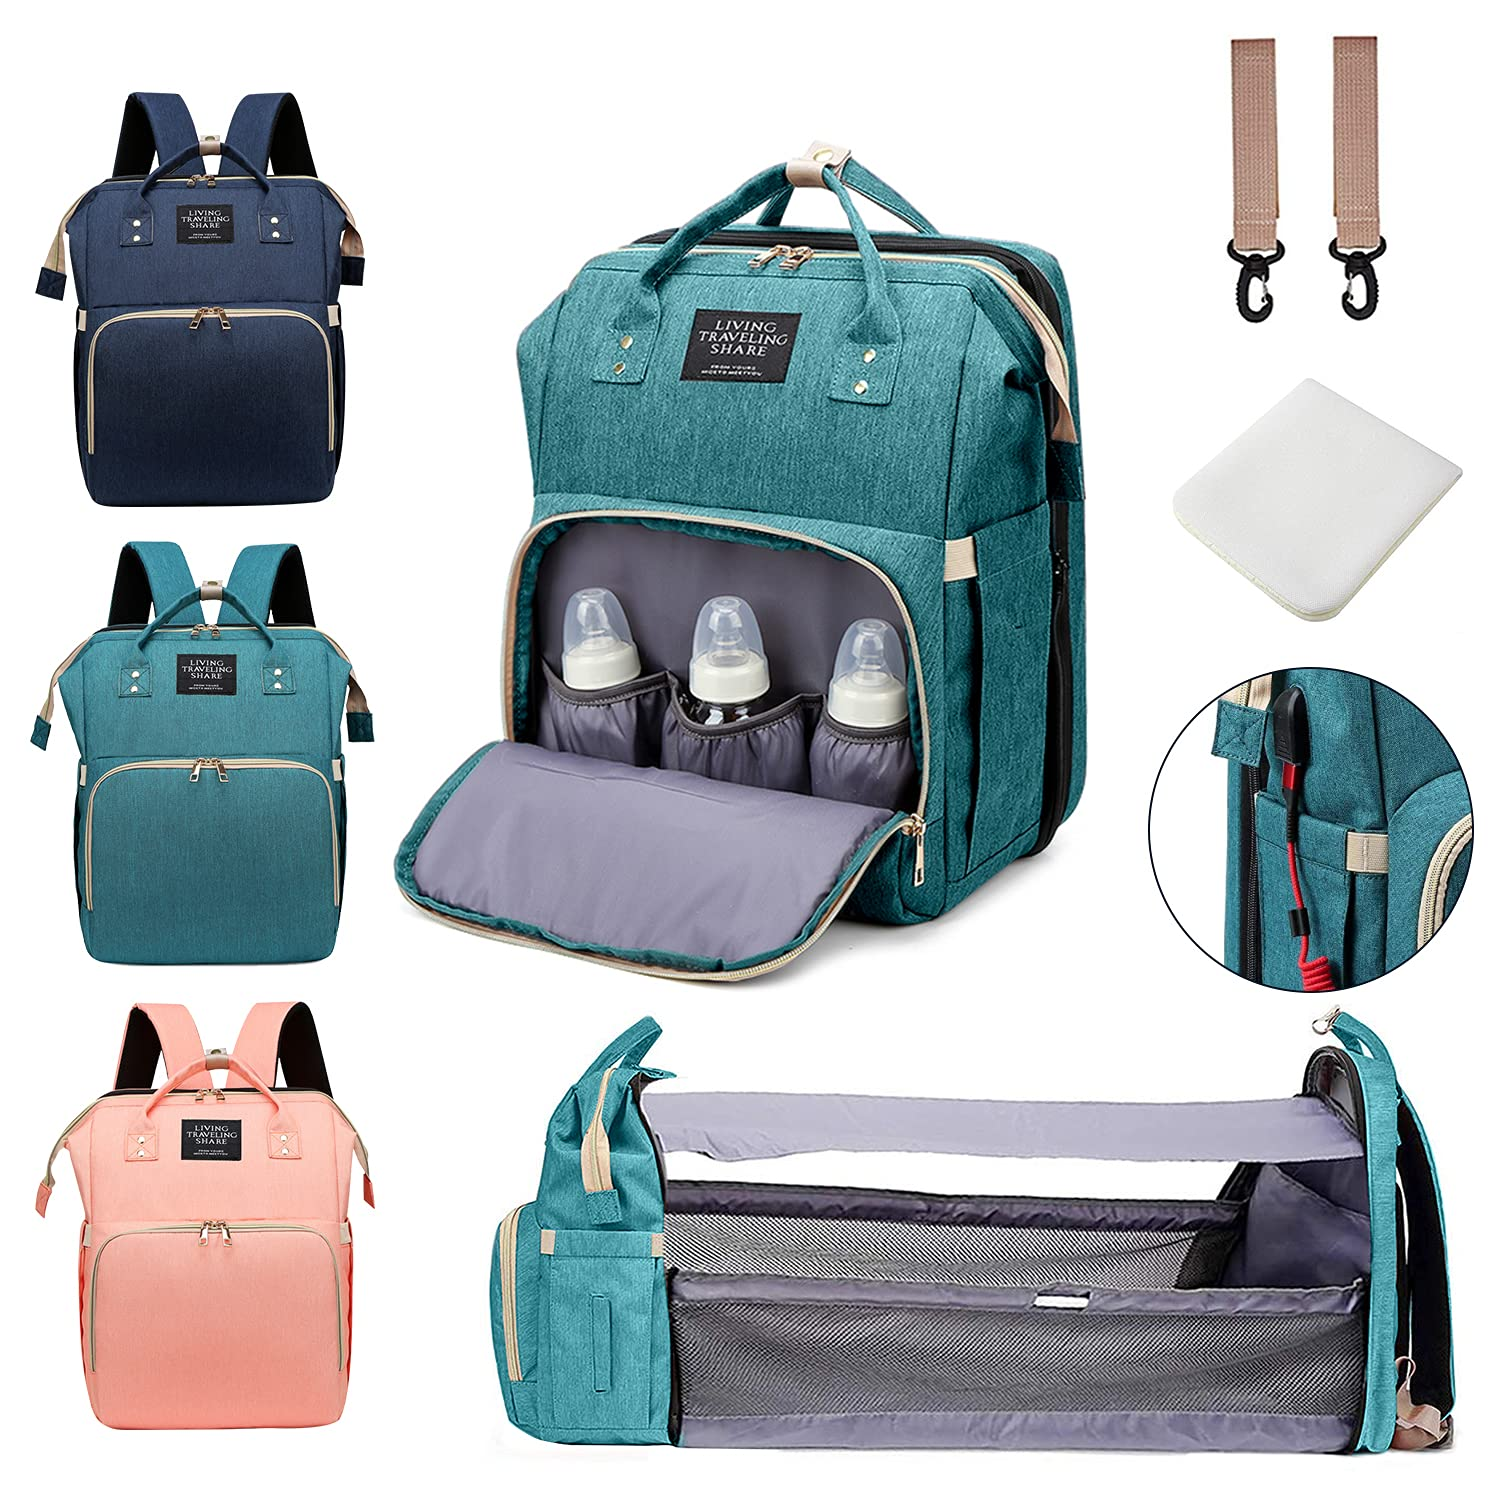 Gearsnug Diaper Bag Backpack with Changing Station Multi-Functional Baby Bag for Baby Boy Girl Newborn Toddler Mom Dad Men Folding Large-Capacity Diaper Bag with Changing Pad USB Charging Port(Teal)